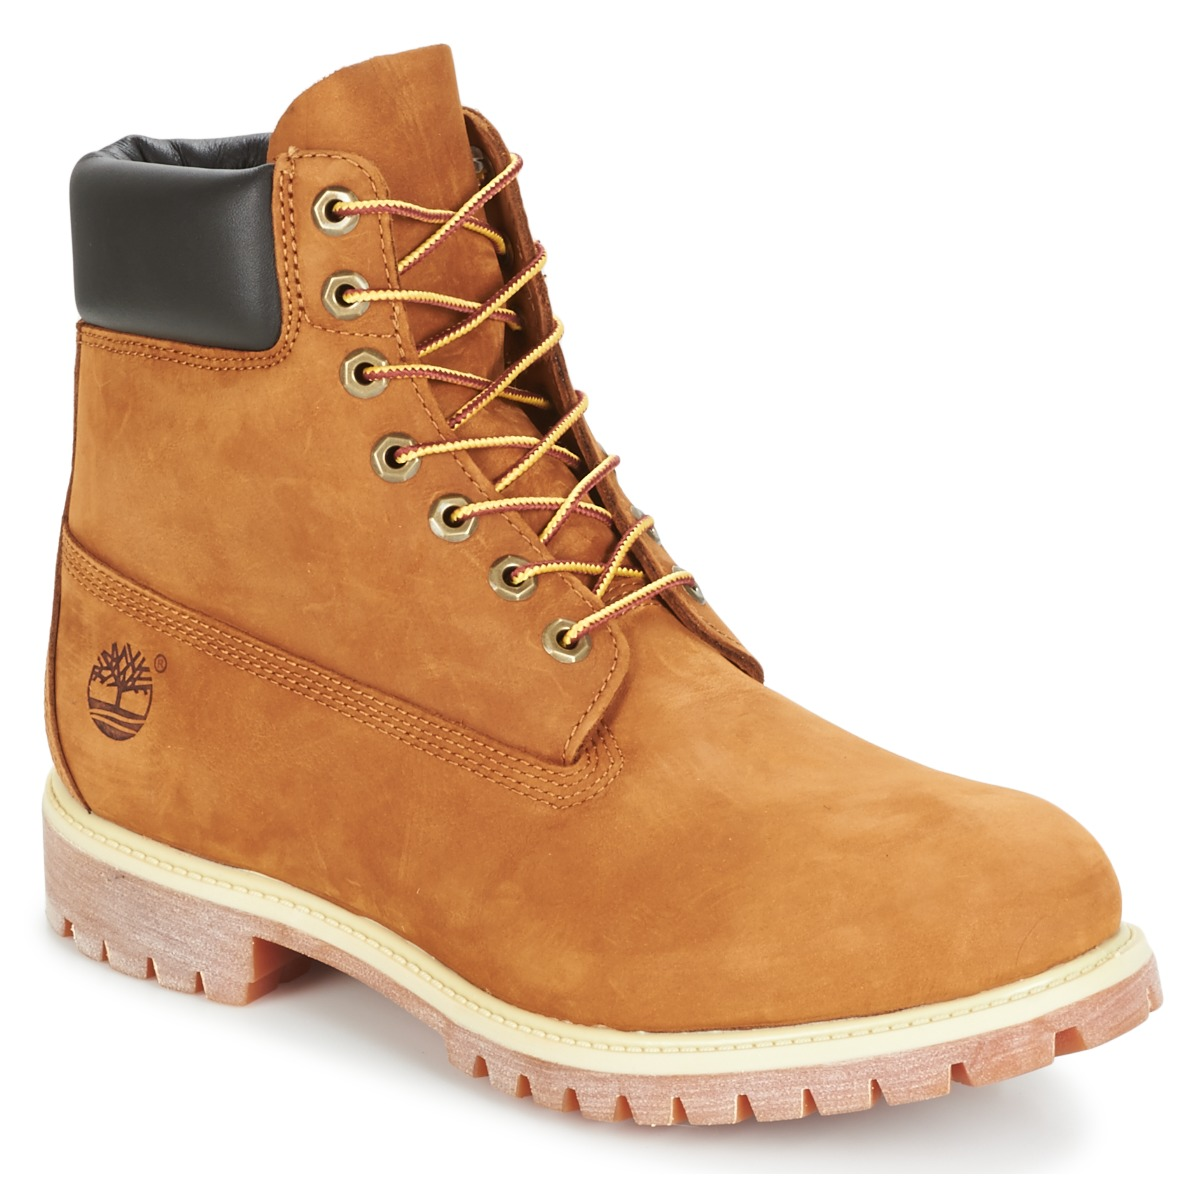 timberland 6 in premium boot marron livraison gratuite avec chaussures boots. Black Bedroom Furniture Sets. Home Design Ideas